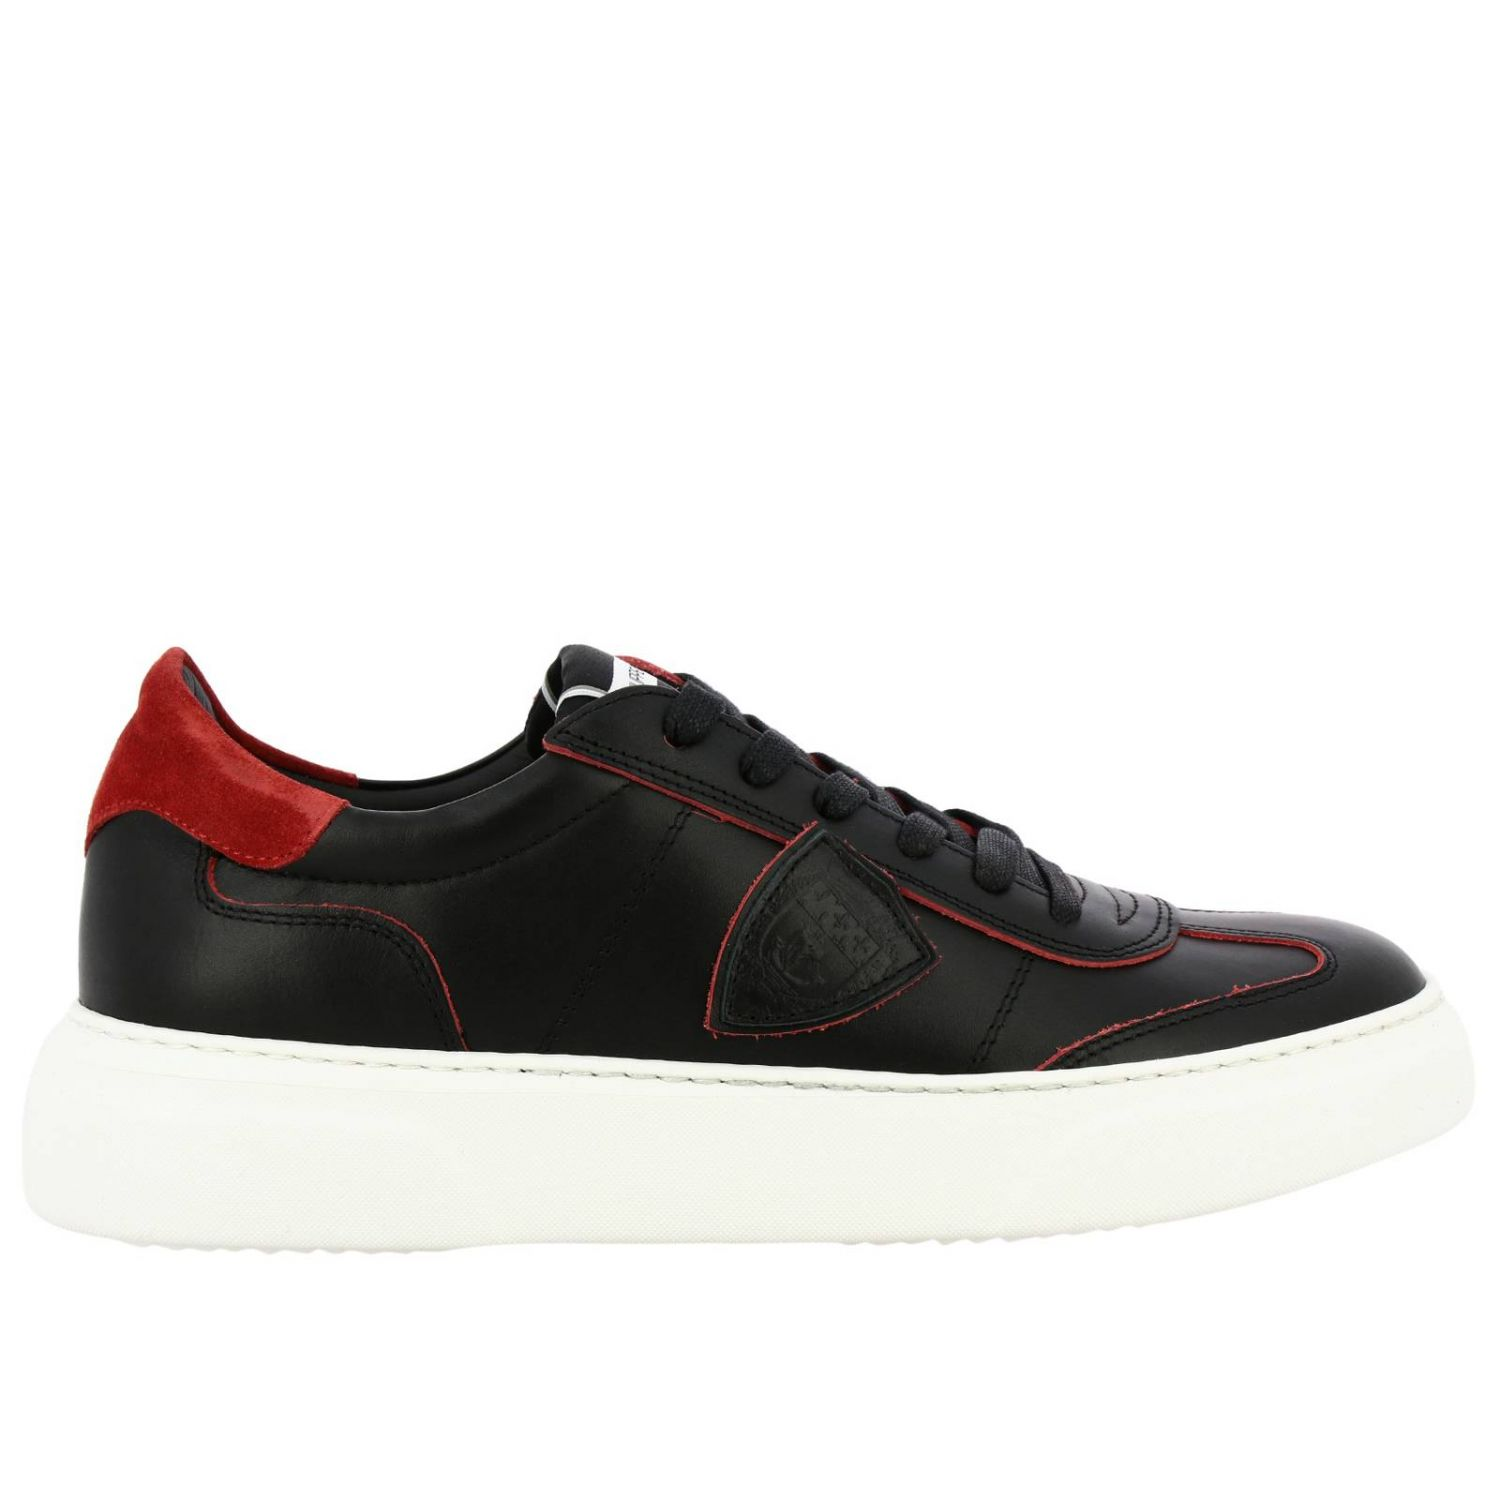 Sneakers Temple Philippe Model stringata in pelle liscia nero 1